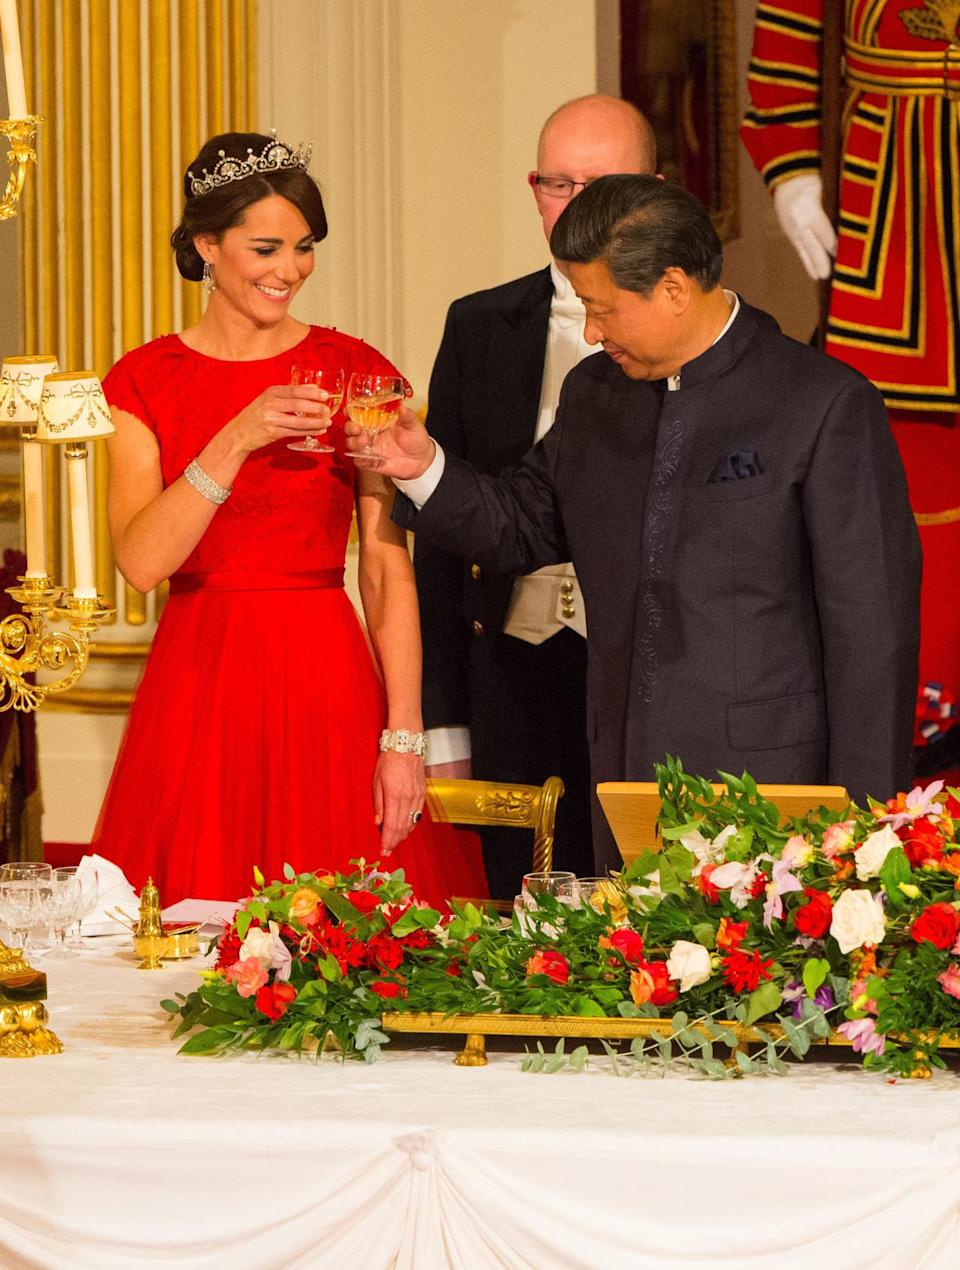 <p>Attending a state banquet in Buckingham Palace for the President of China, Kate went for a beautiful red Jenny Packham gown along with the Lotus Flower tiara - symbolic of China's culture. </p><p><i>[Photo: PA]</i></p>